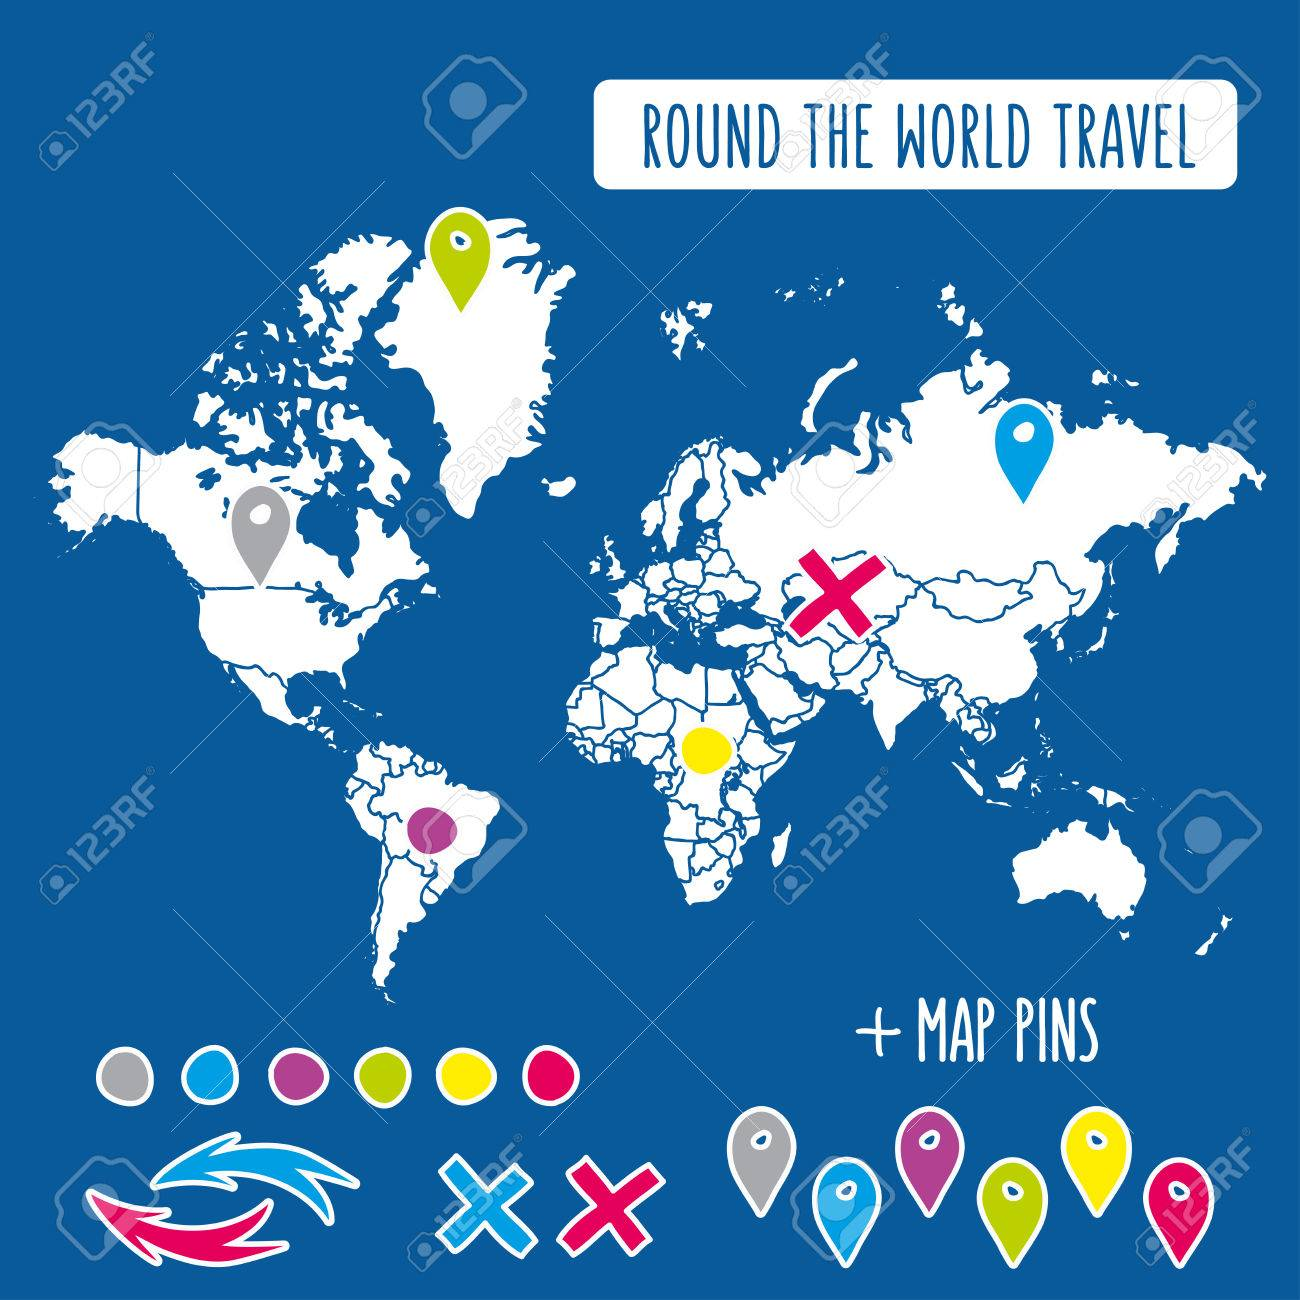 hand drawn world map with pins and arrows vector design cartoon style atlas illustration